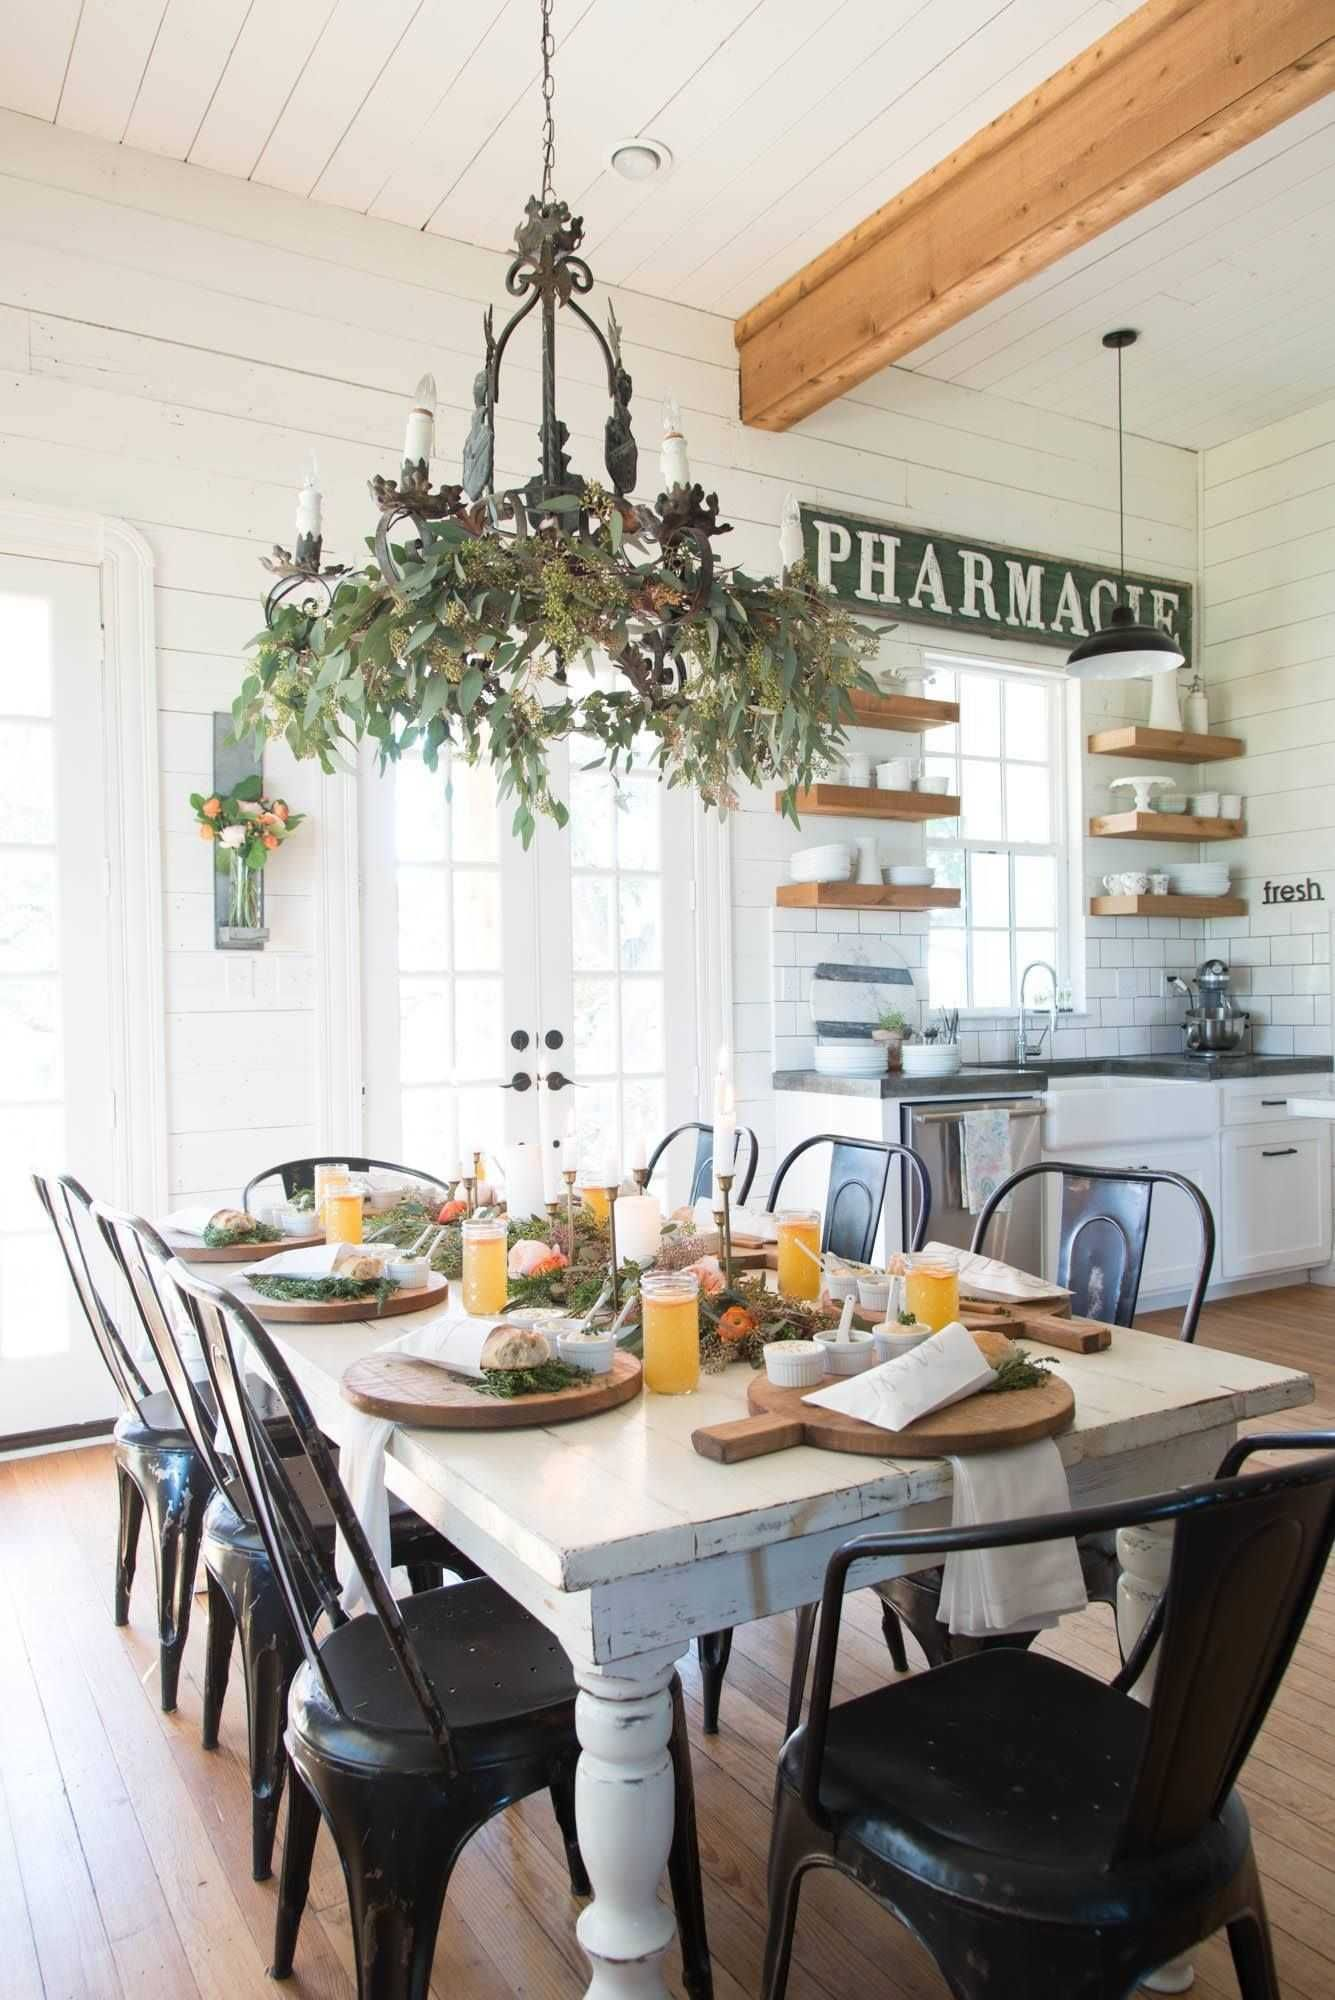 Joanna Gaines Farmhouse Chic Luxury Joanna Gaines Farmhouse Chic Joanna Gaines Furniture Co Modern Farmhouse Dining Farmhouse Dining Table Farmhouse Dining